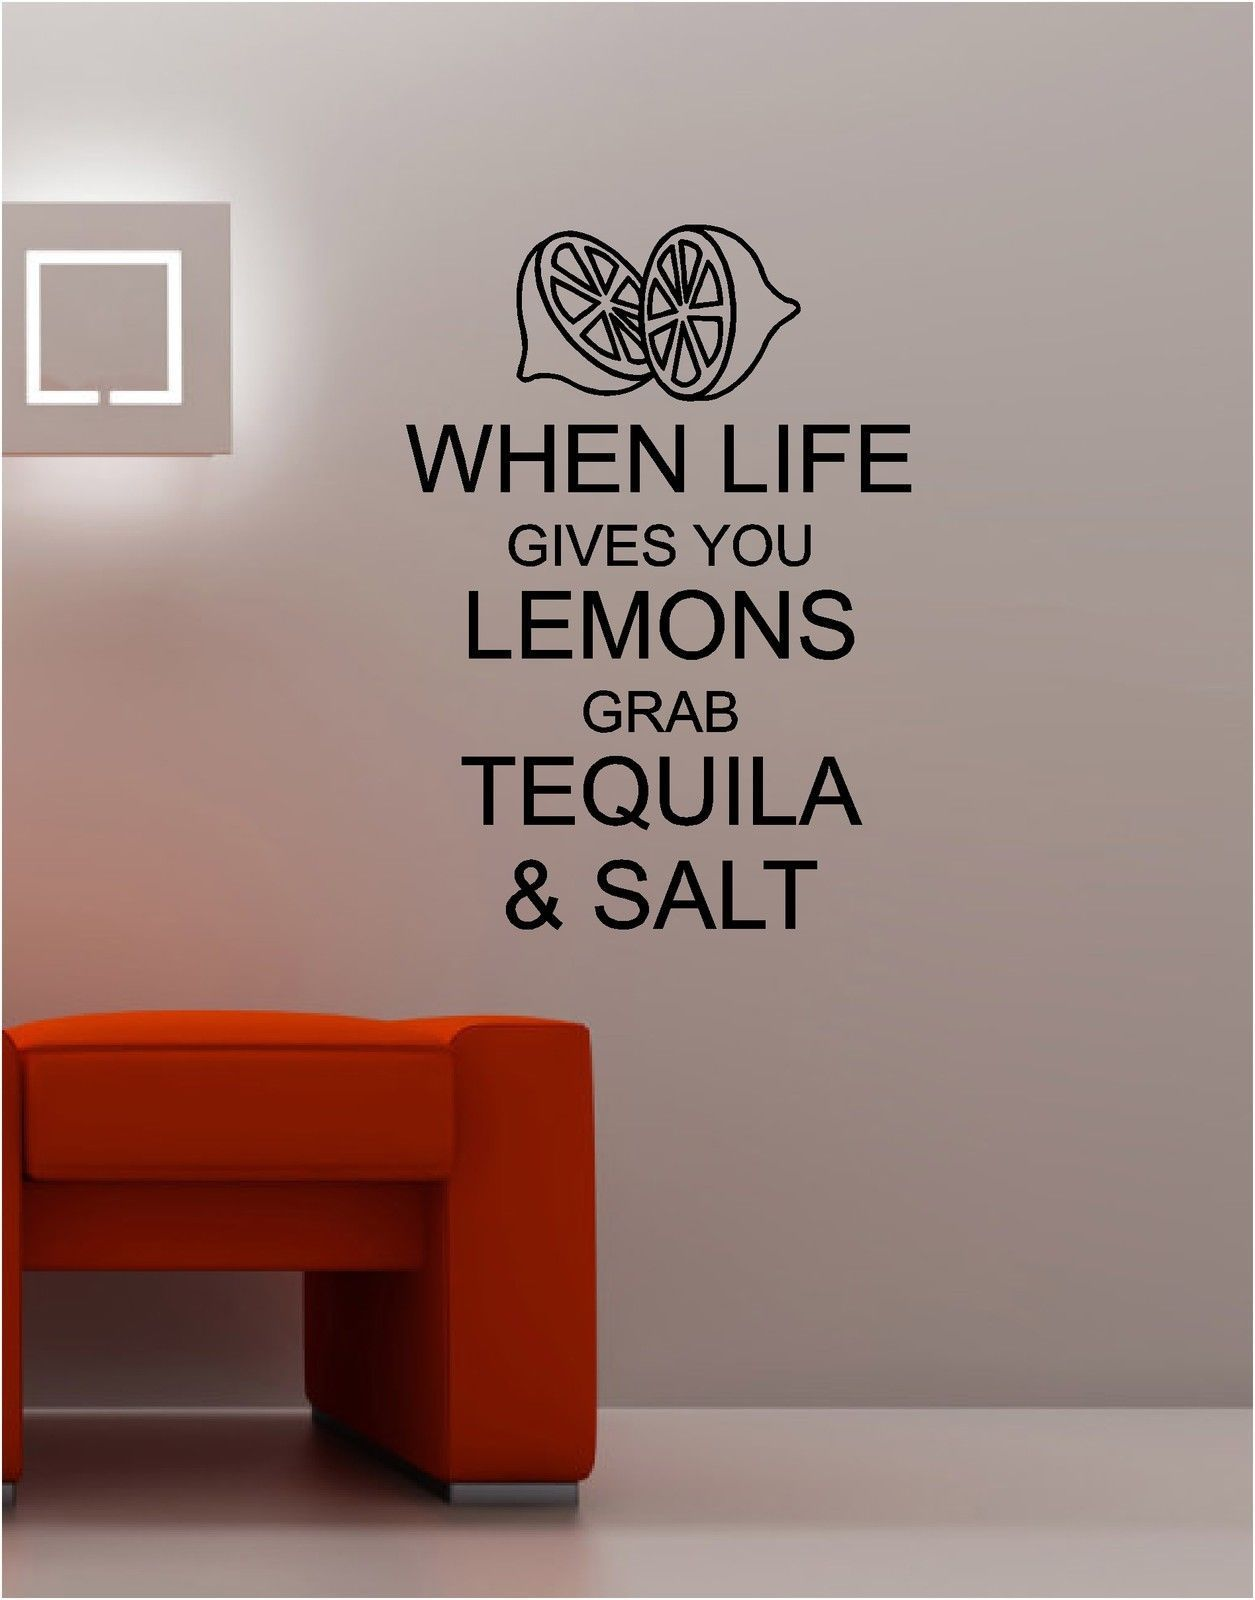 Details about WHEN LIFE GIVES YOU LEMONS wall art sticker